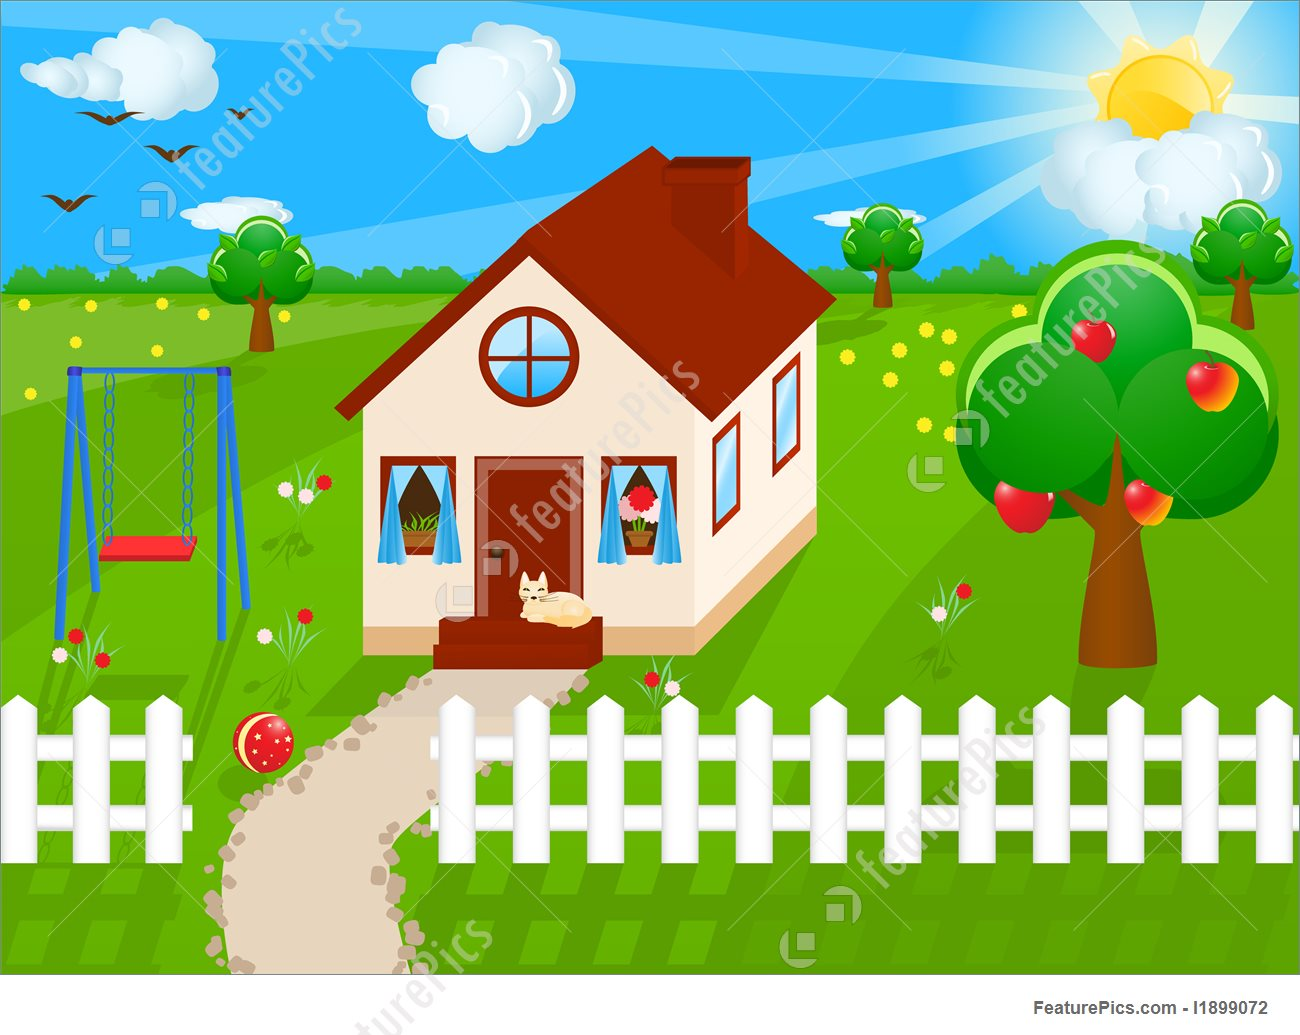 House With Yard Clipart.